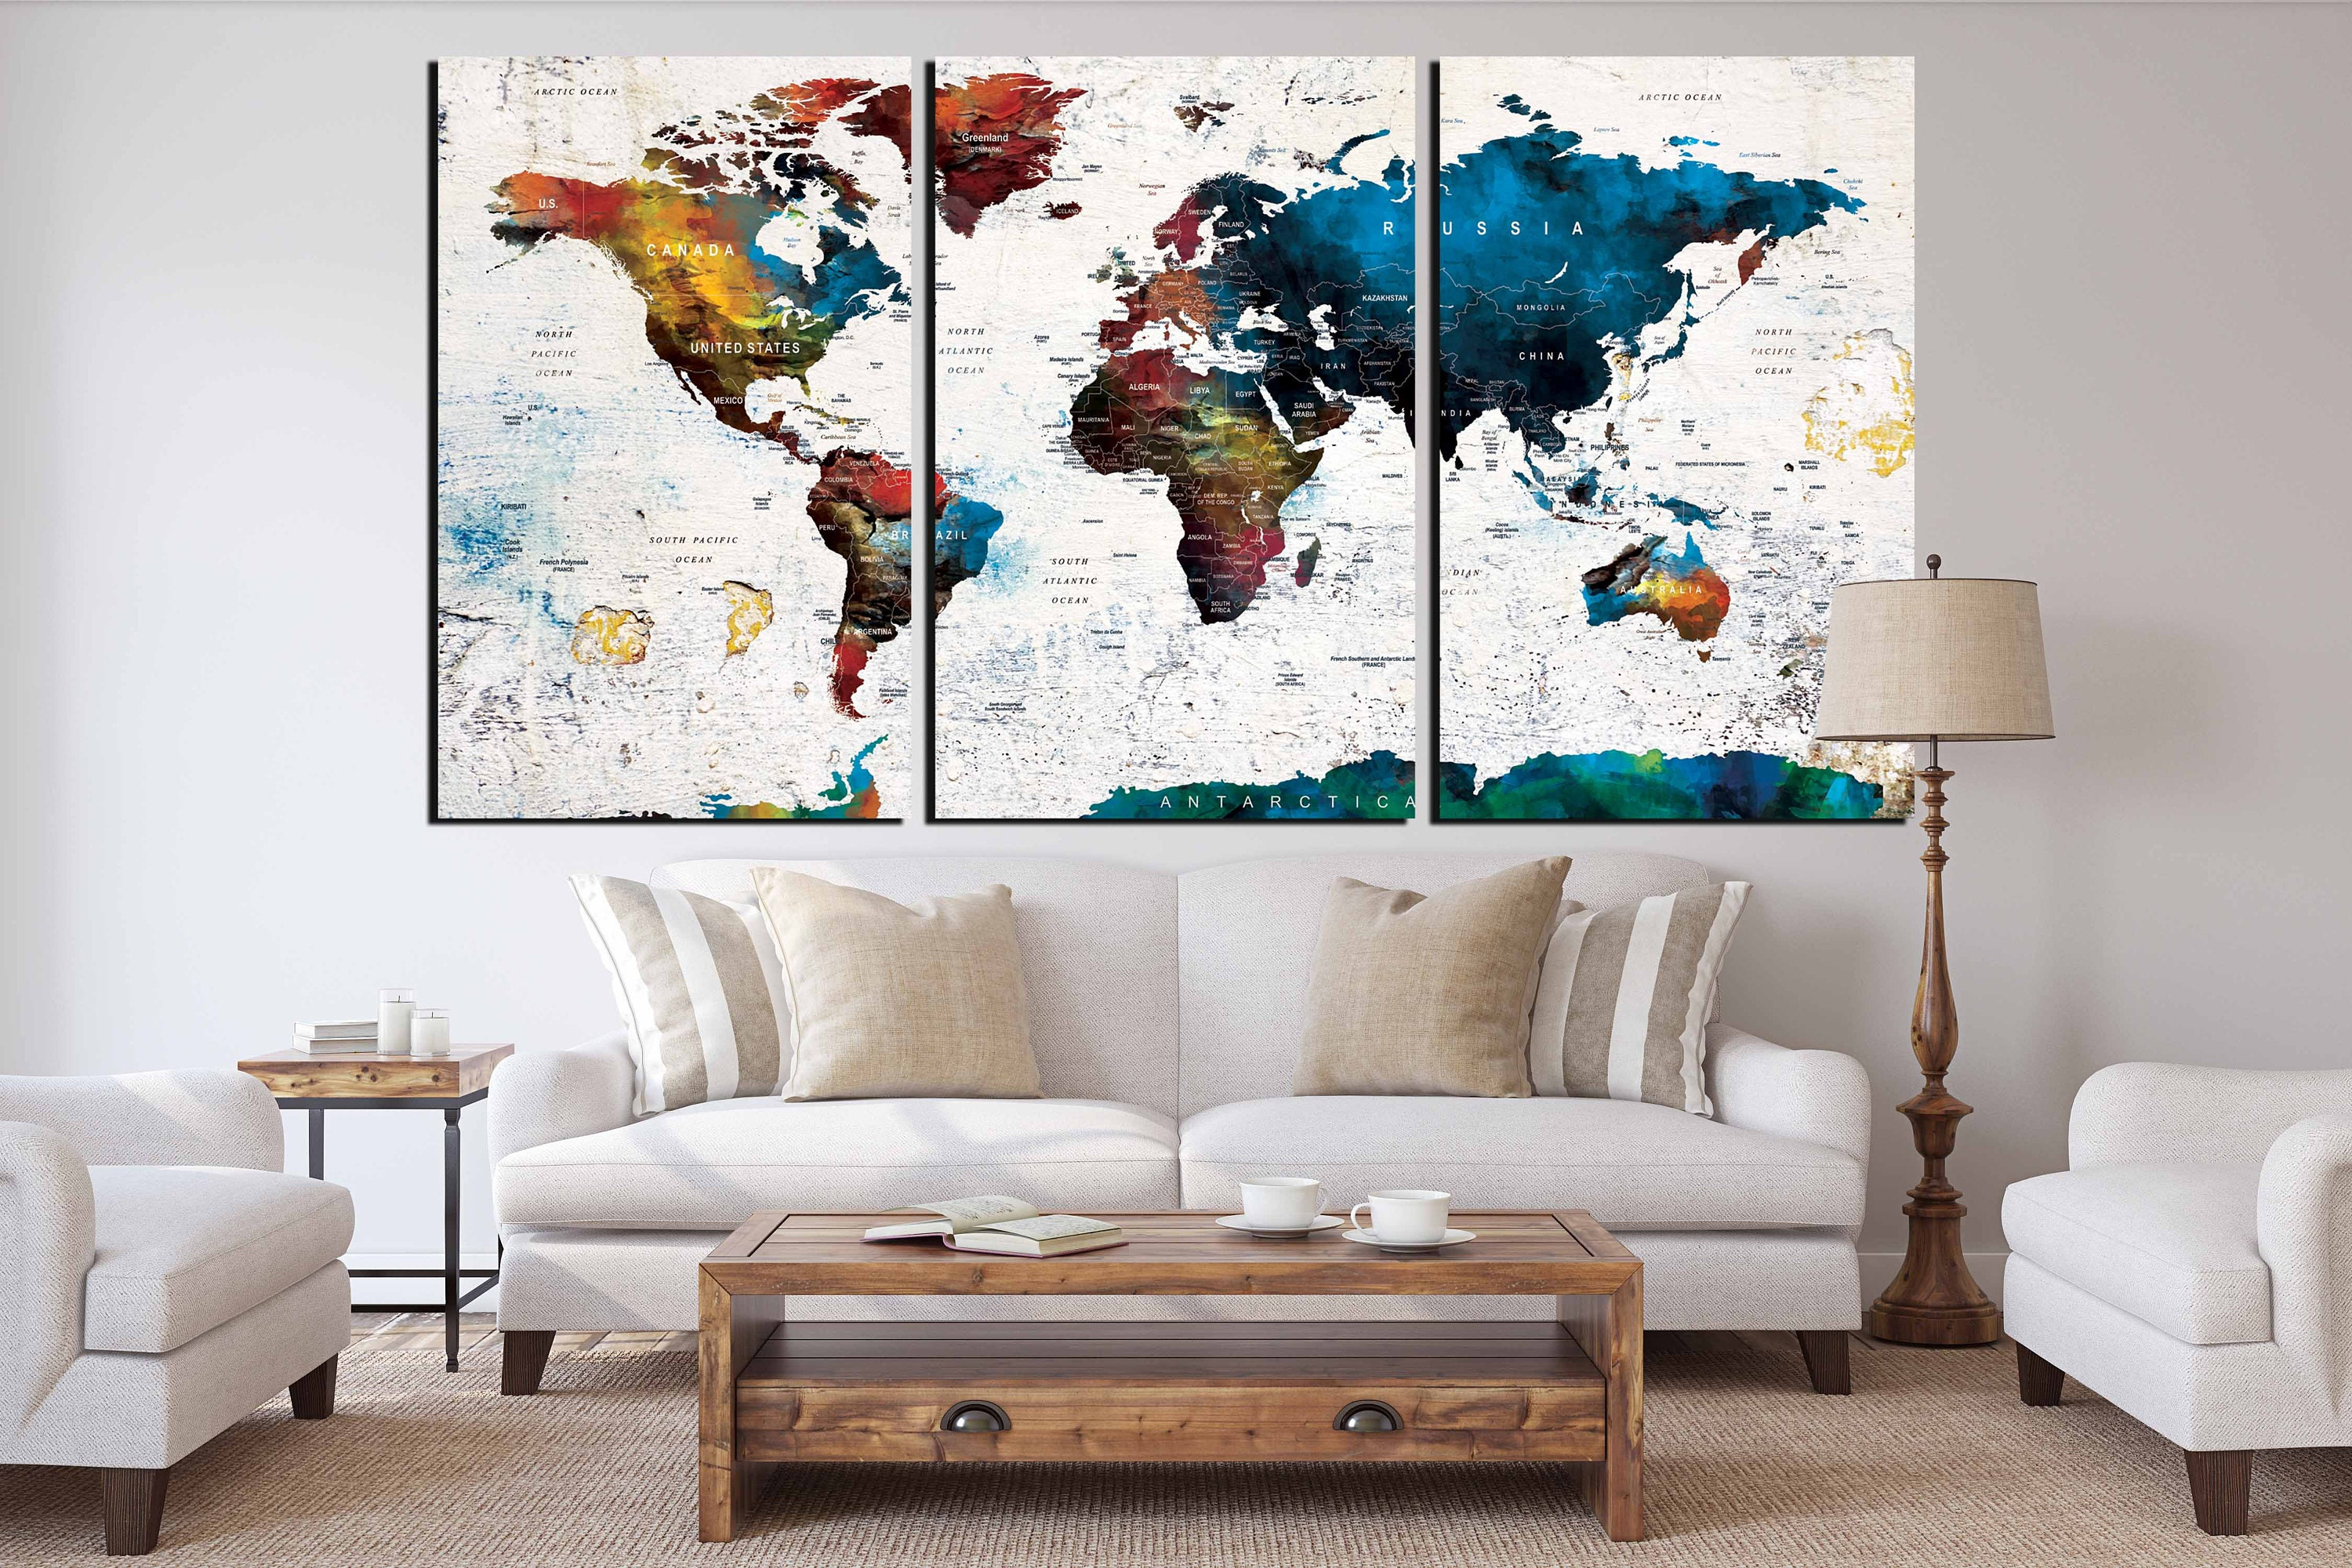 World map canvas art ready to hang world maplarge world mapworld world map canvas art ready to hang world maplarge world mapworld map push pinworld map printworld map artworld map panelstravel map gumiabroncs Choice Image